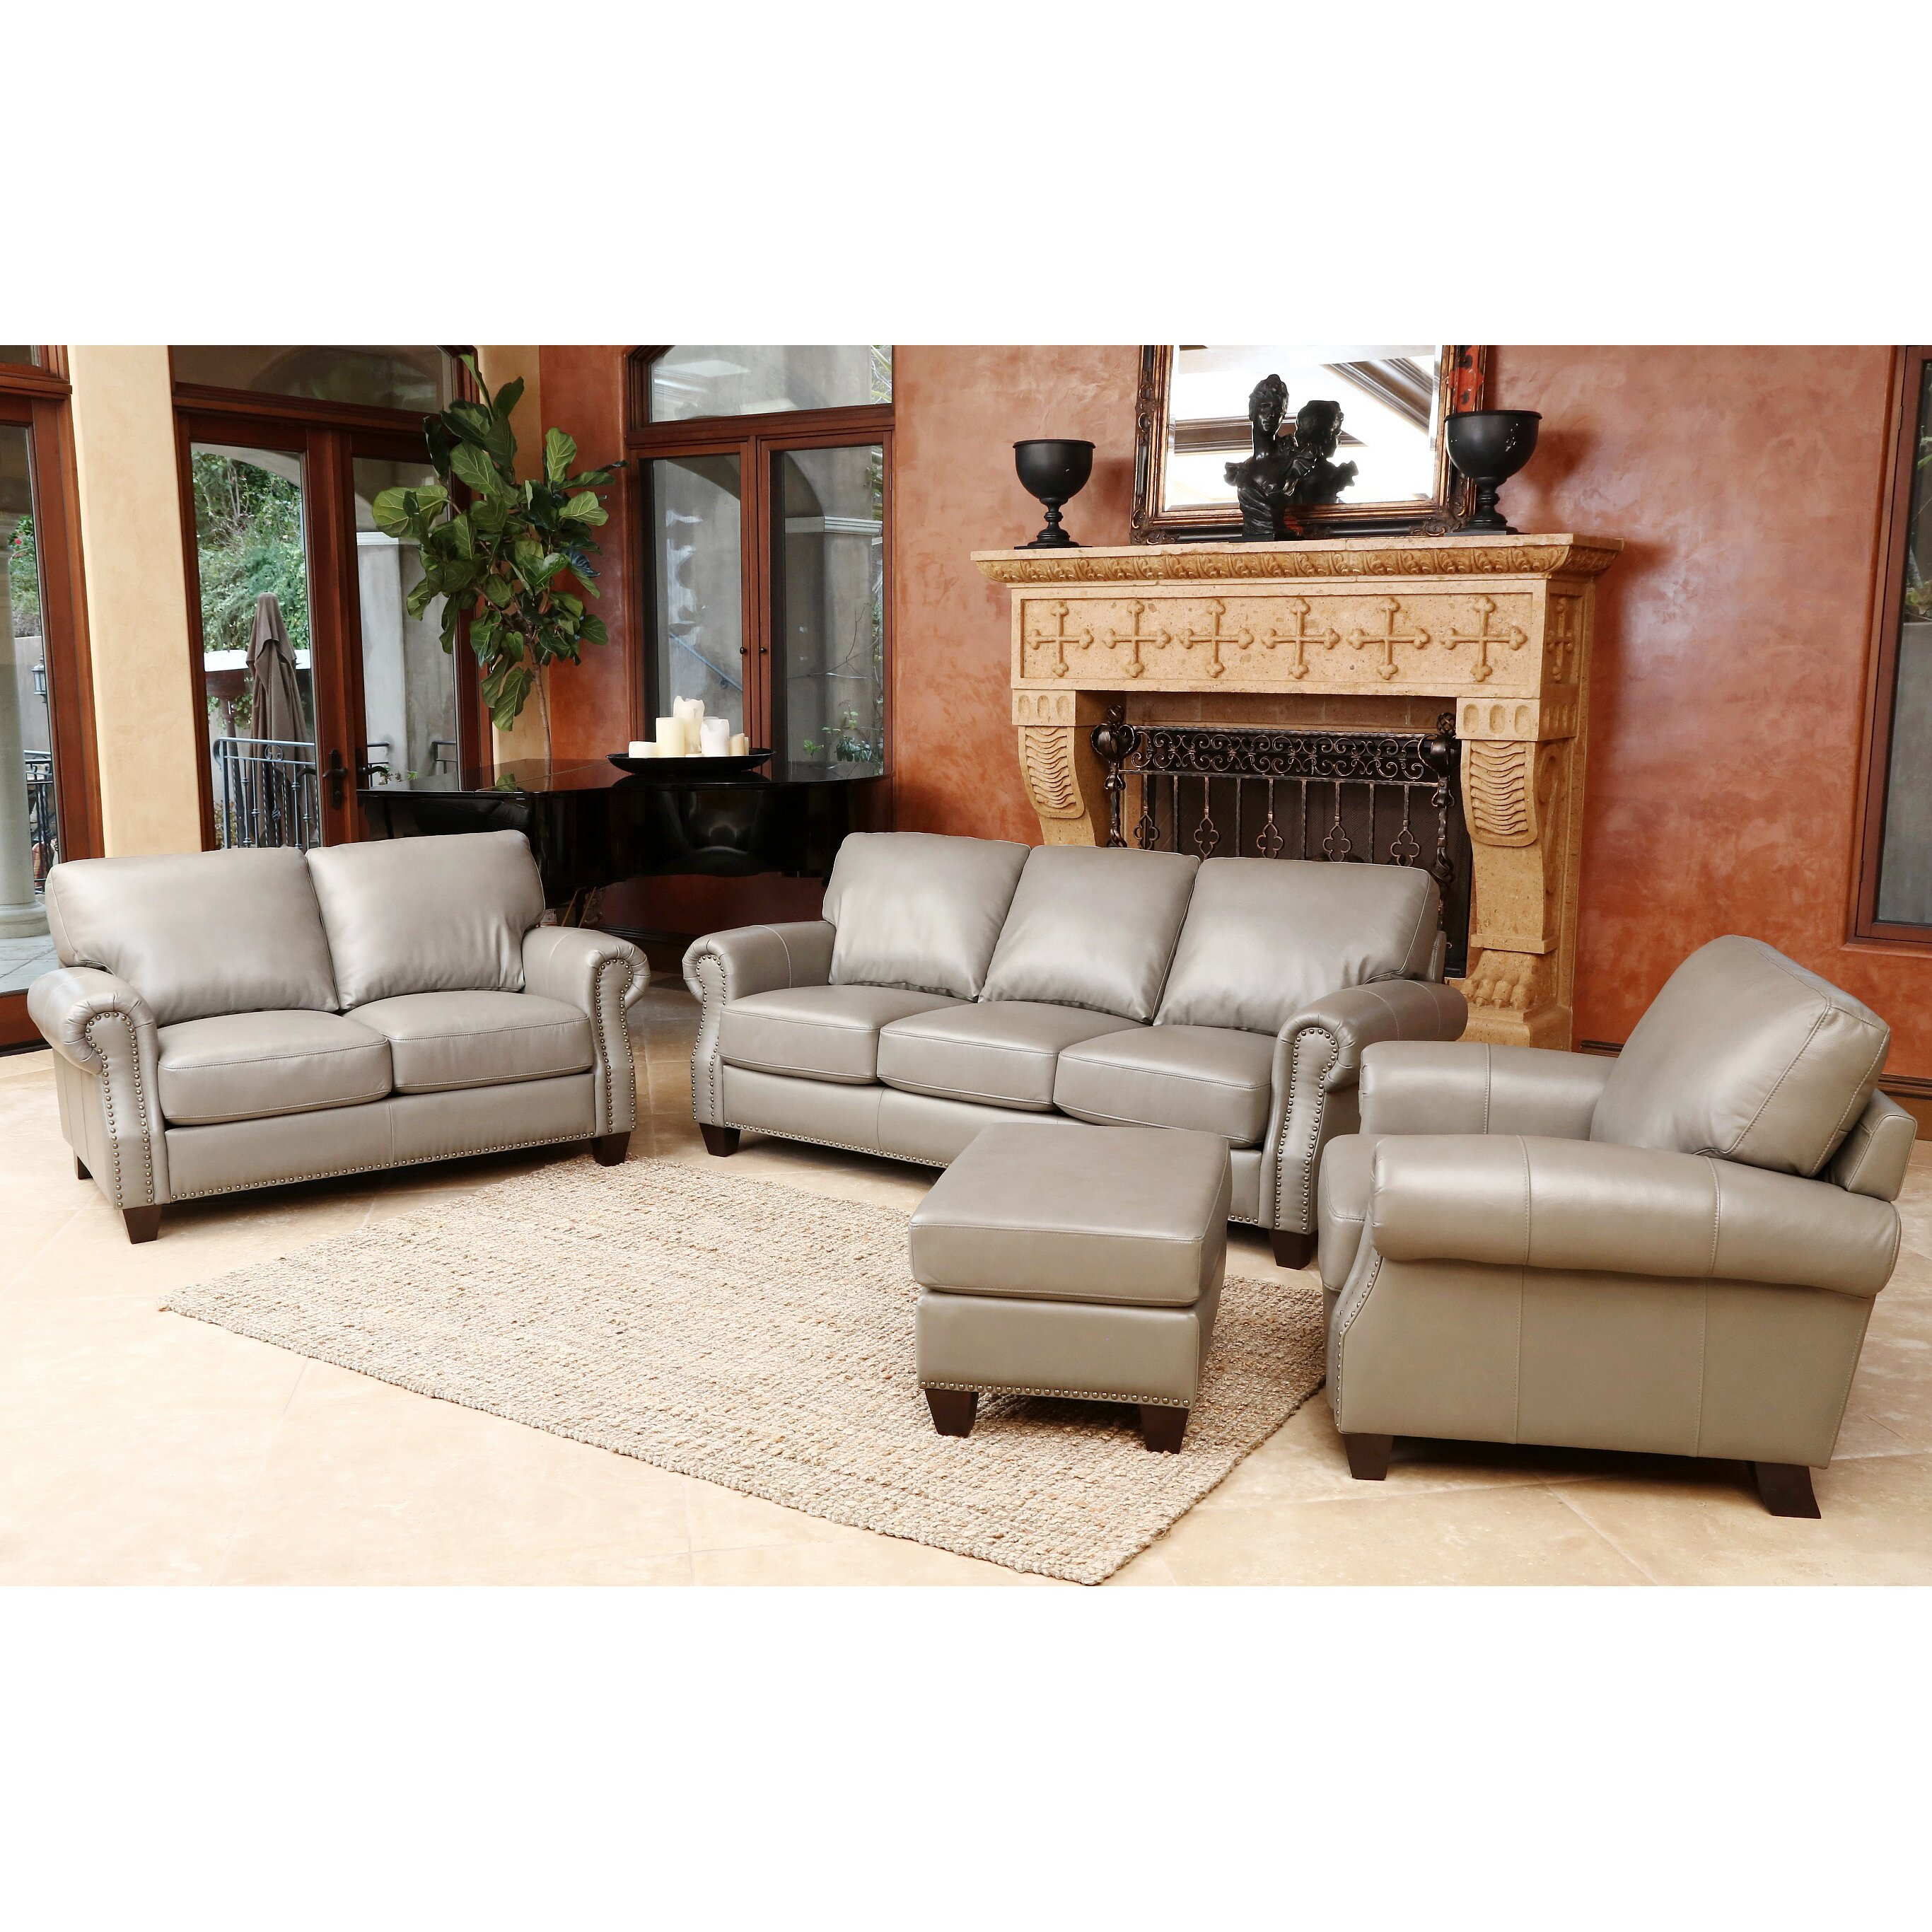 Darby home co cairnbrook 3 piece leather living room set for 3 piece living room set